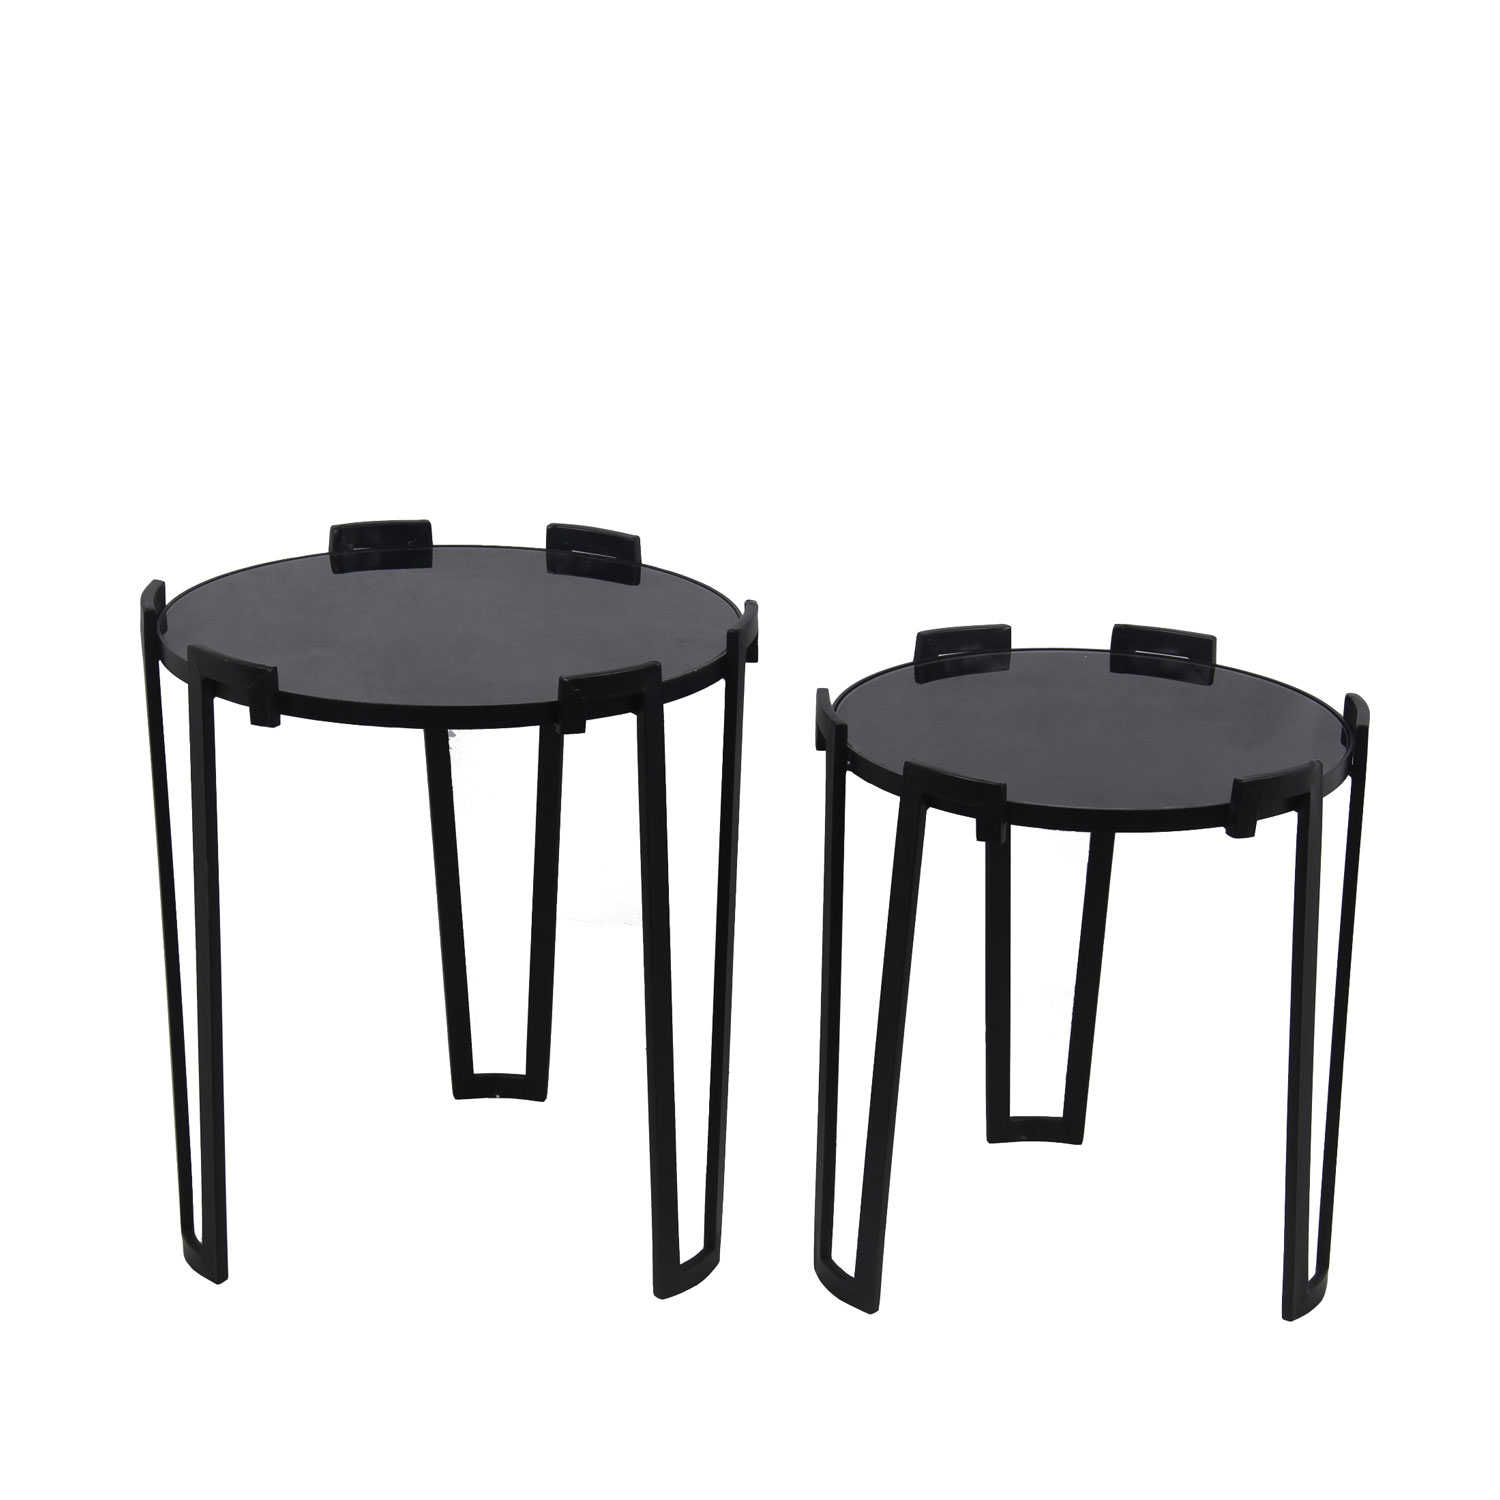 privilege black glass two piece accent tables bellacor table hover zoom dressing ornaments floral chair metal furniture bookends target red decor pottery barn round folding coffee